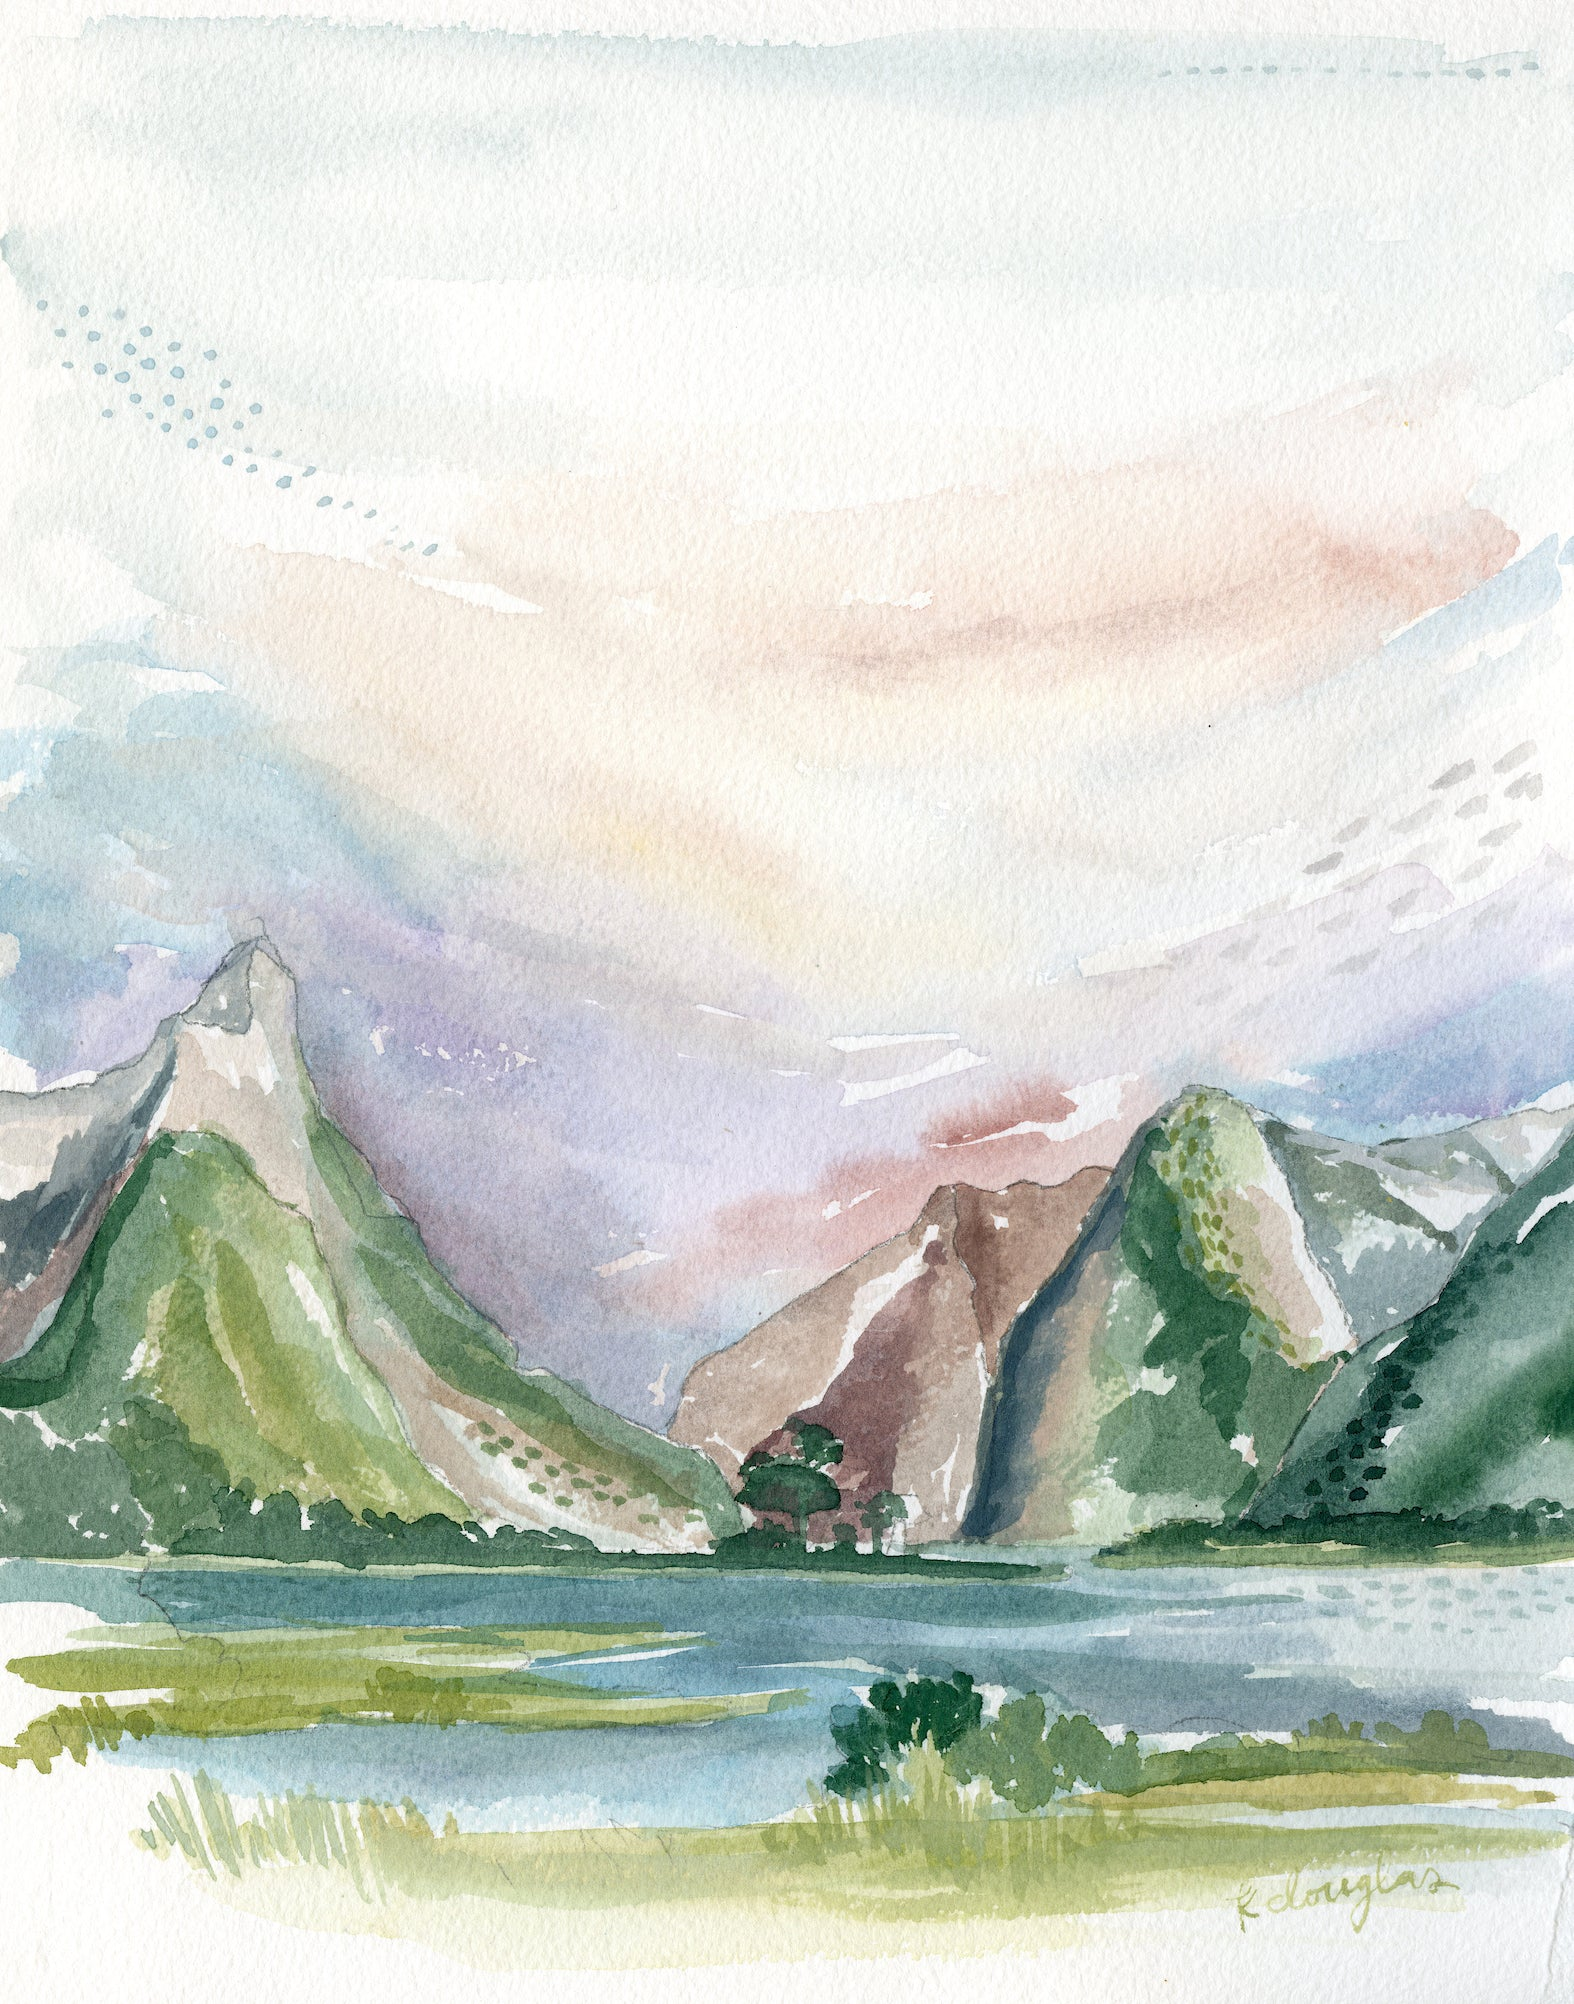 New Zealand Original Watercolor Painting- 11x14